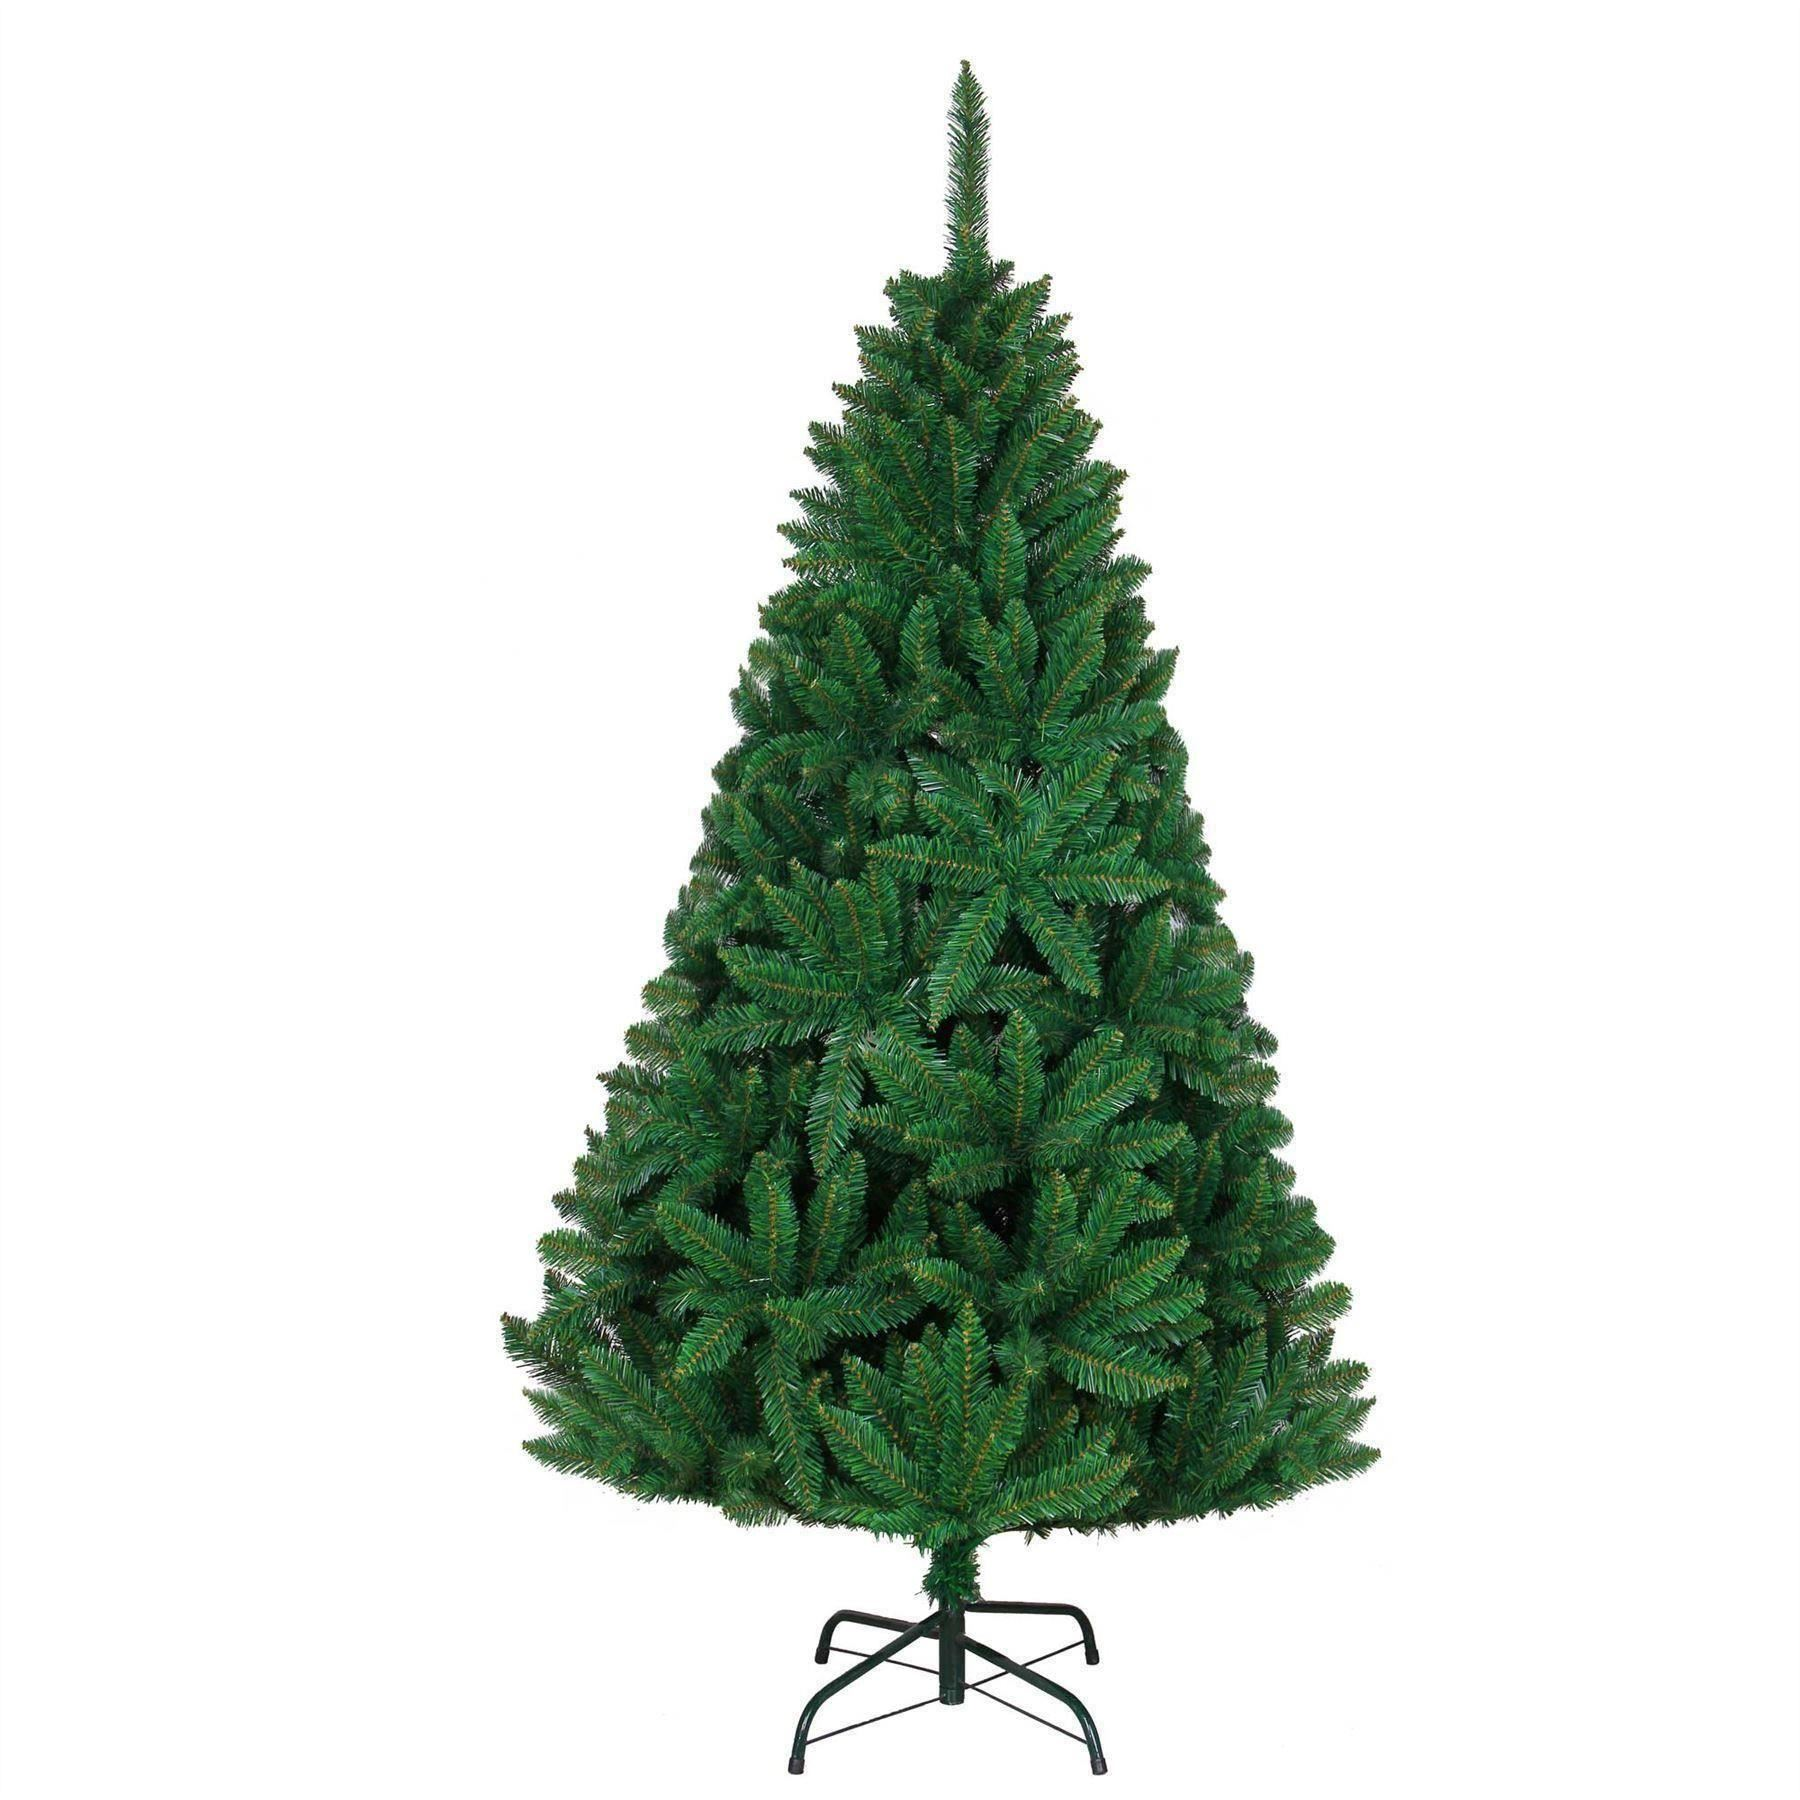 8ft Green Christmas Tree with Artificial Imperial Pine Deluxe Christmas Tree